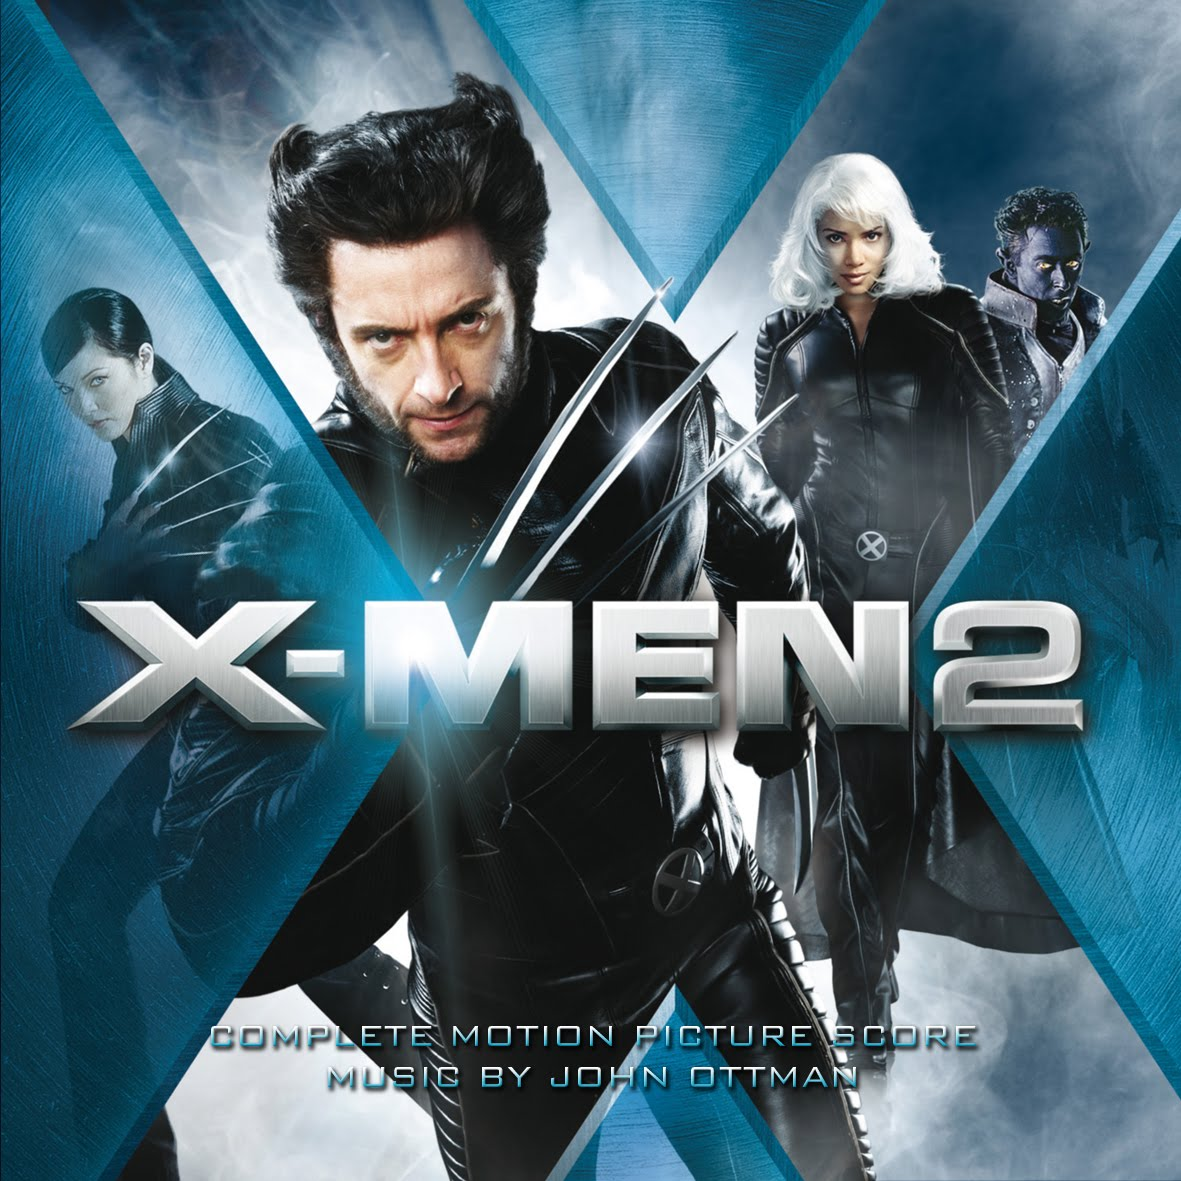 x men 7 days of future past 2014 tamil dubbed movie hd 720p x men 2 2003 tamil dubbed movie hd 720p watch online